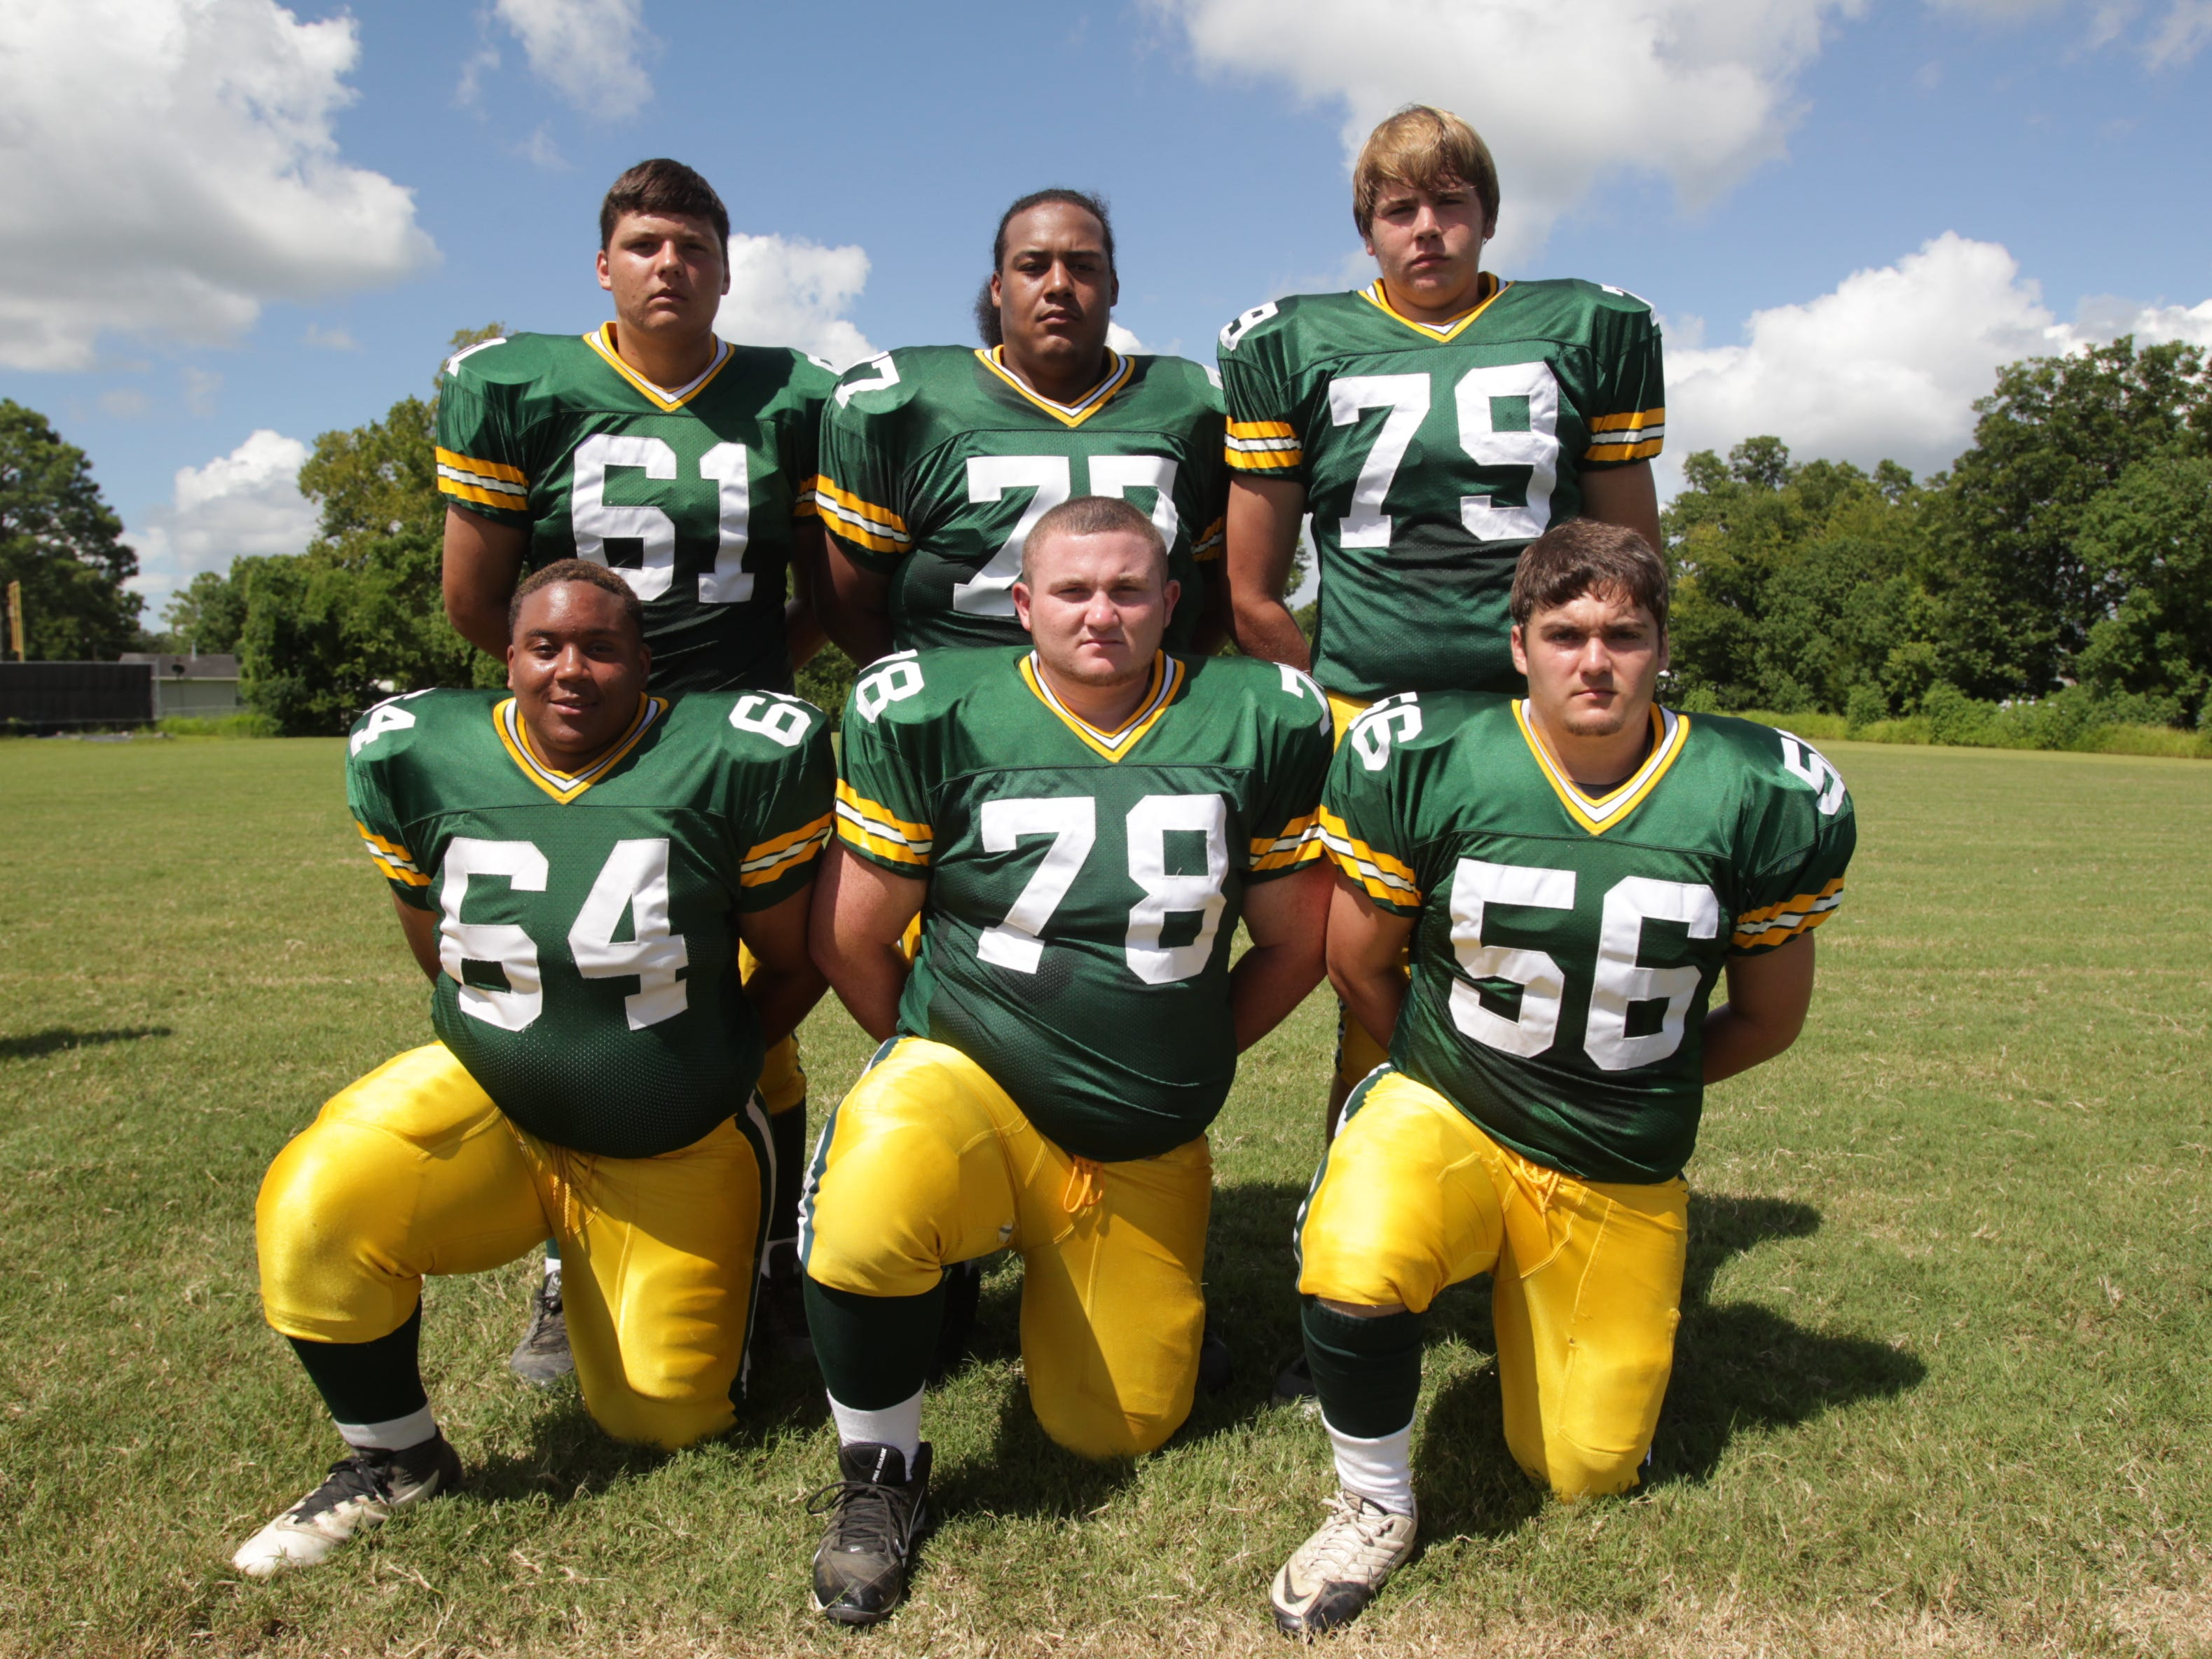 Cecilia's beef in the trenches this season will include: Brylan Ray (61),Tyler Senegal (77), Trenton Guidry (79), Dreylan Duffy (64), Trent Bergeron (78) and Bailey Marks (56).